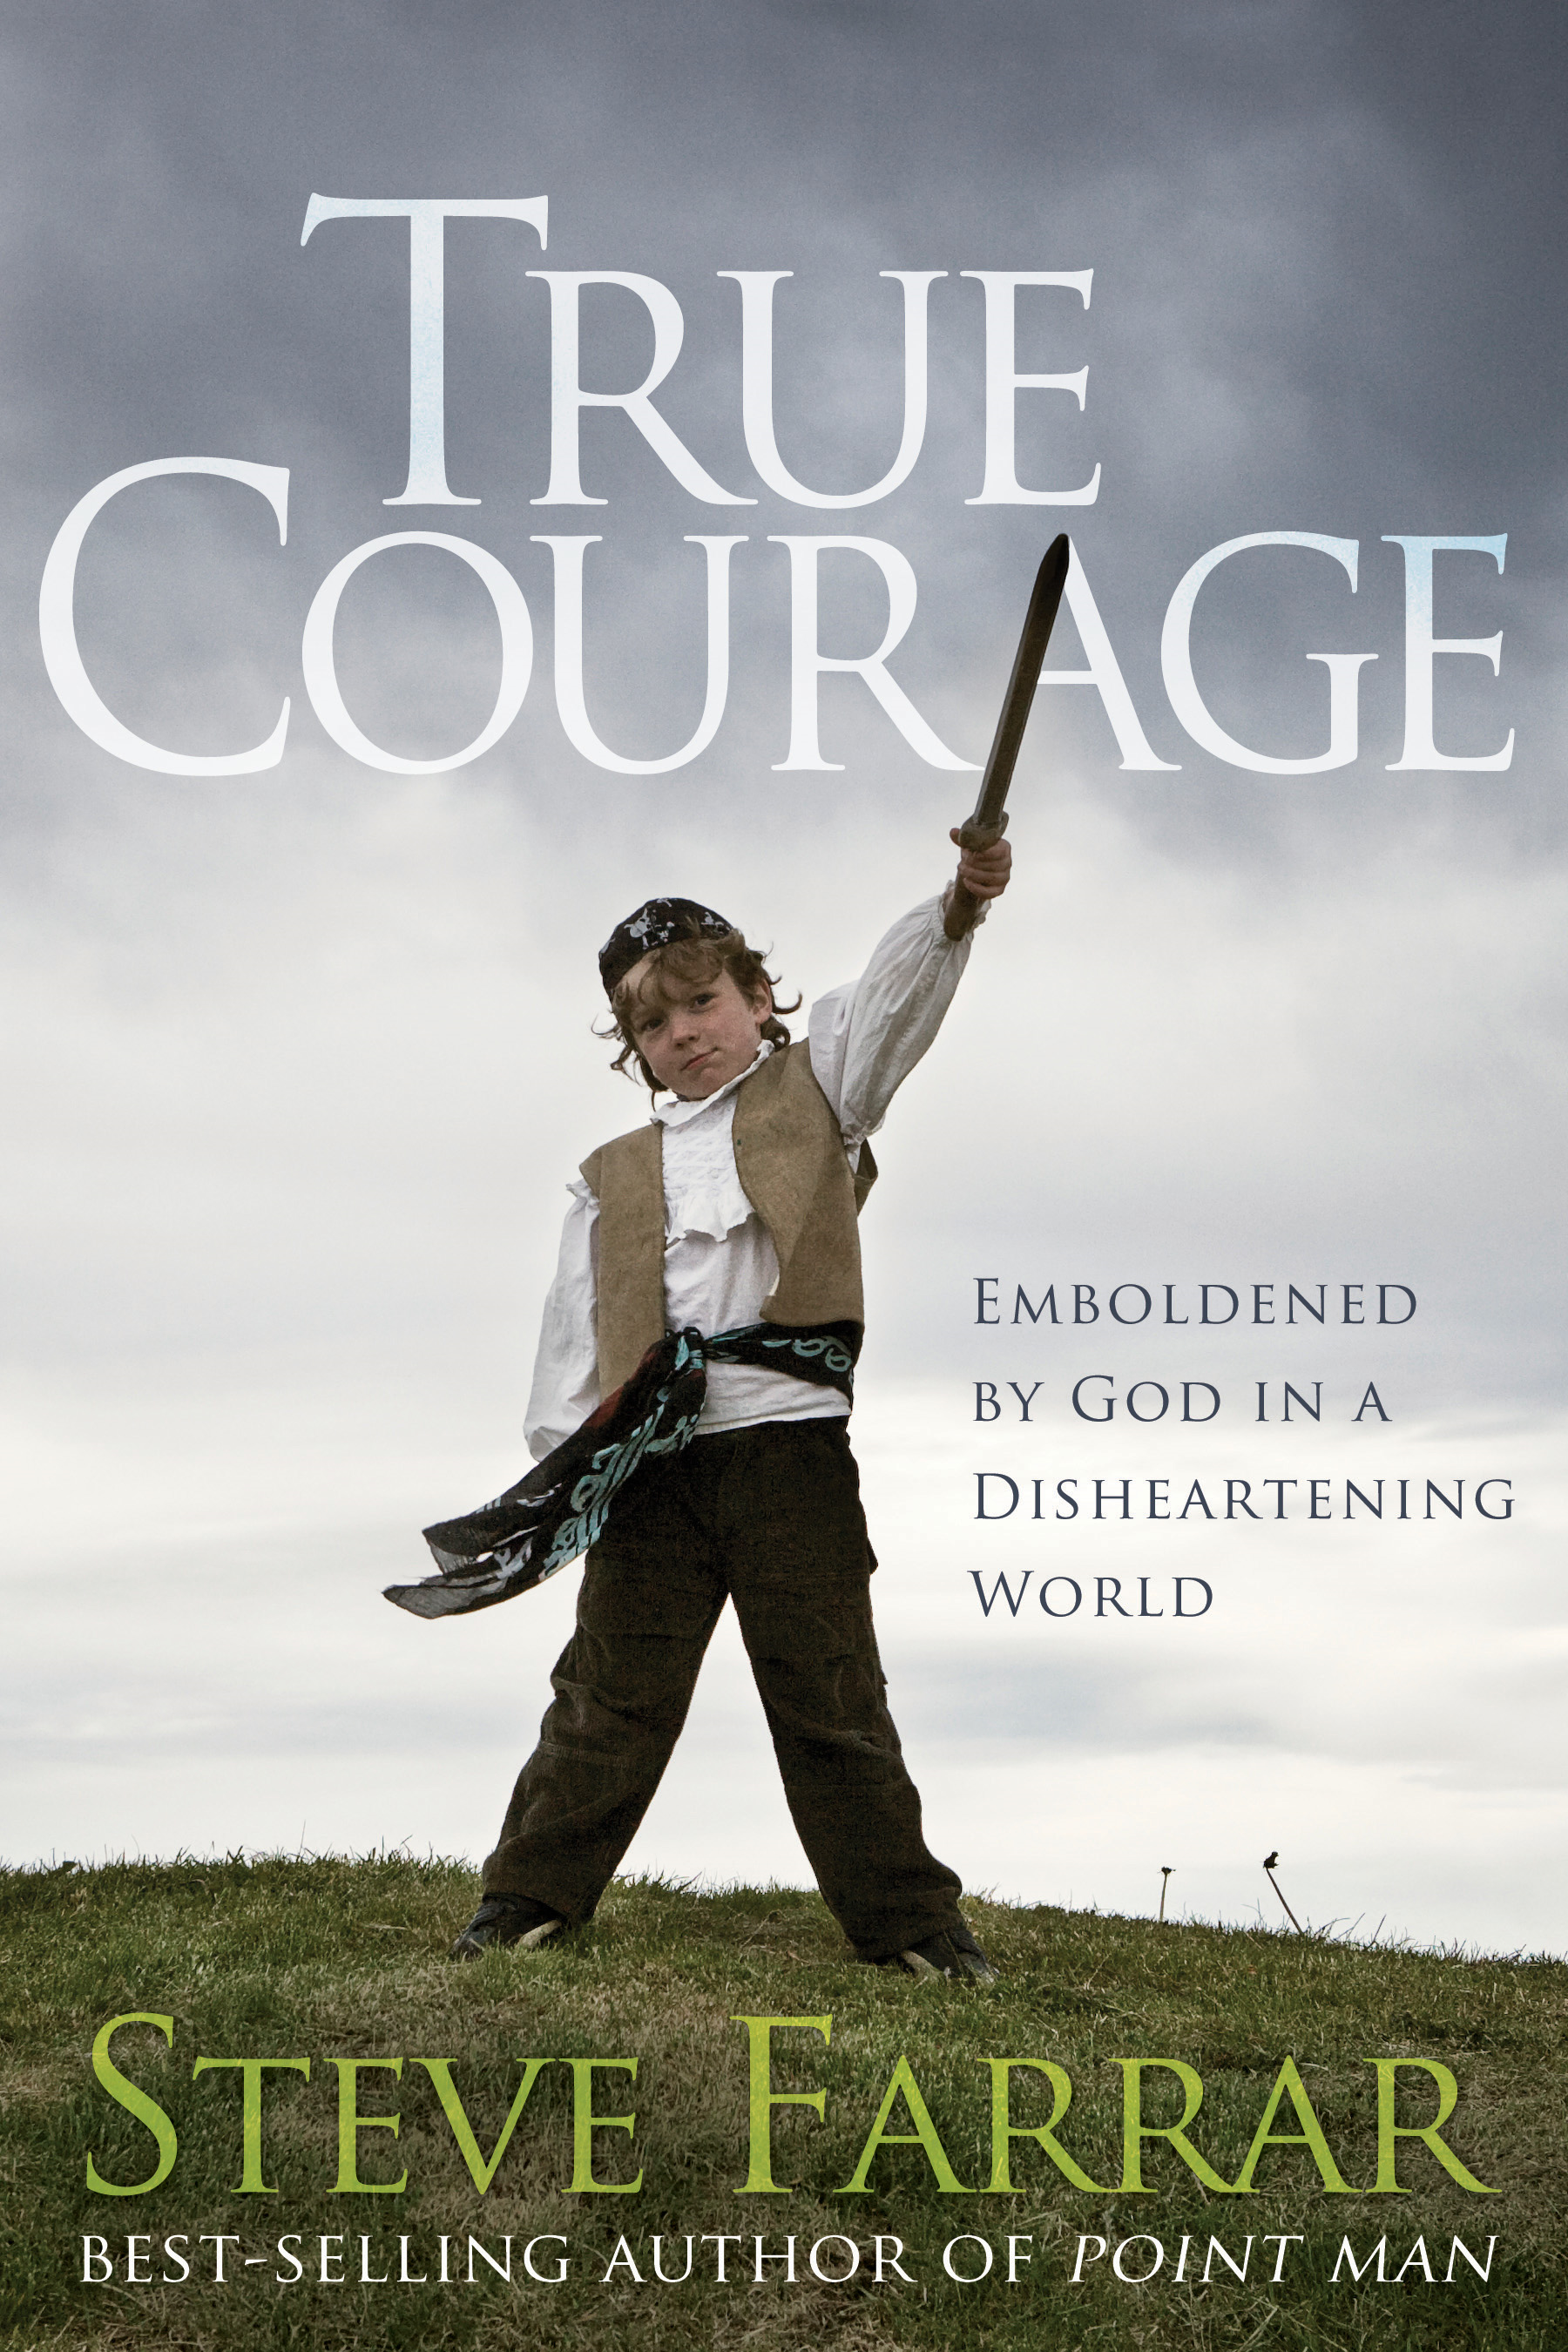 True Courage: Emboldened by God in a Disheartening World By: Steve Farrar